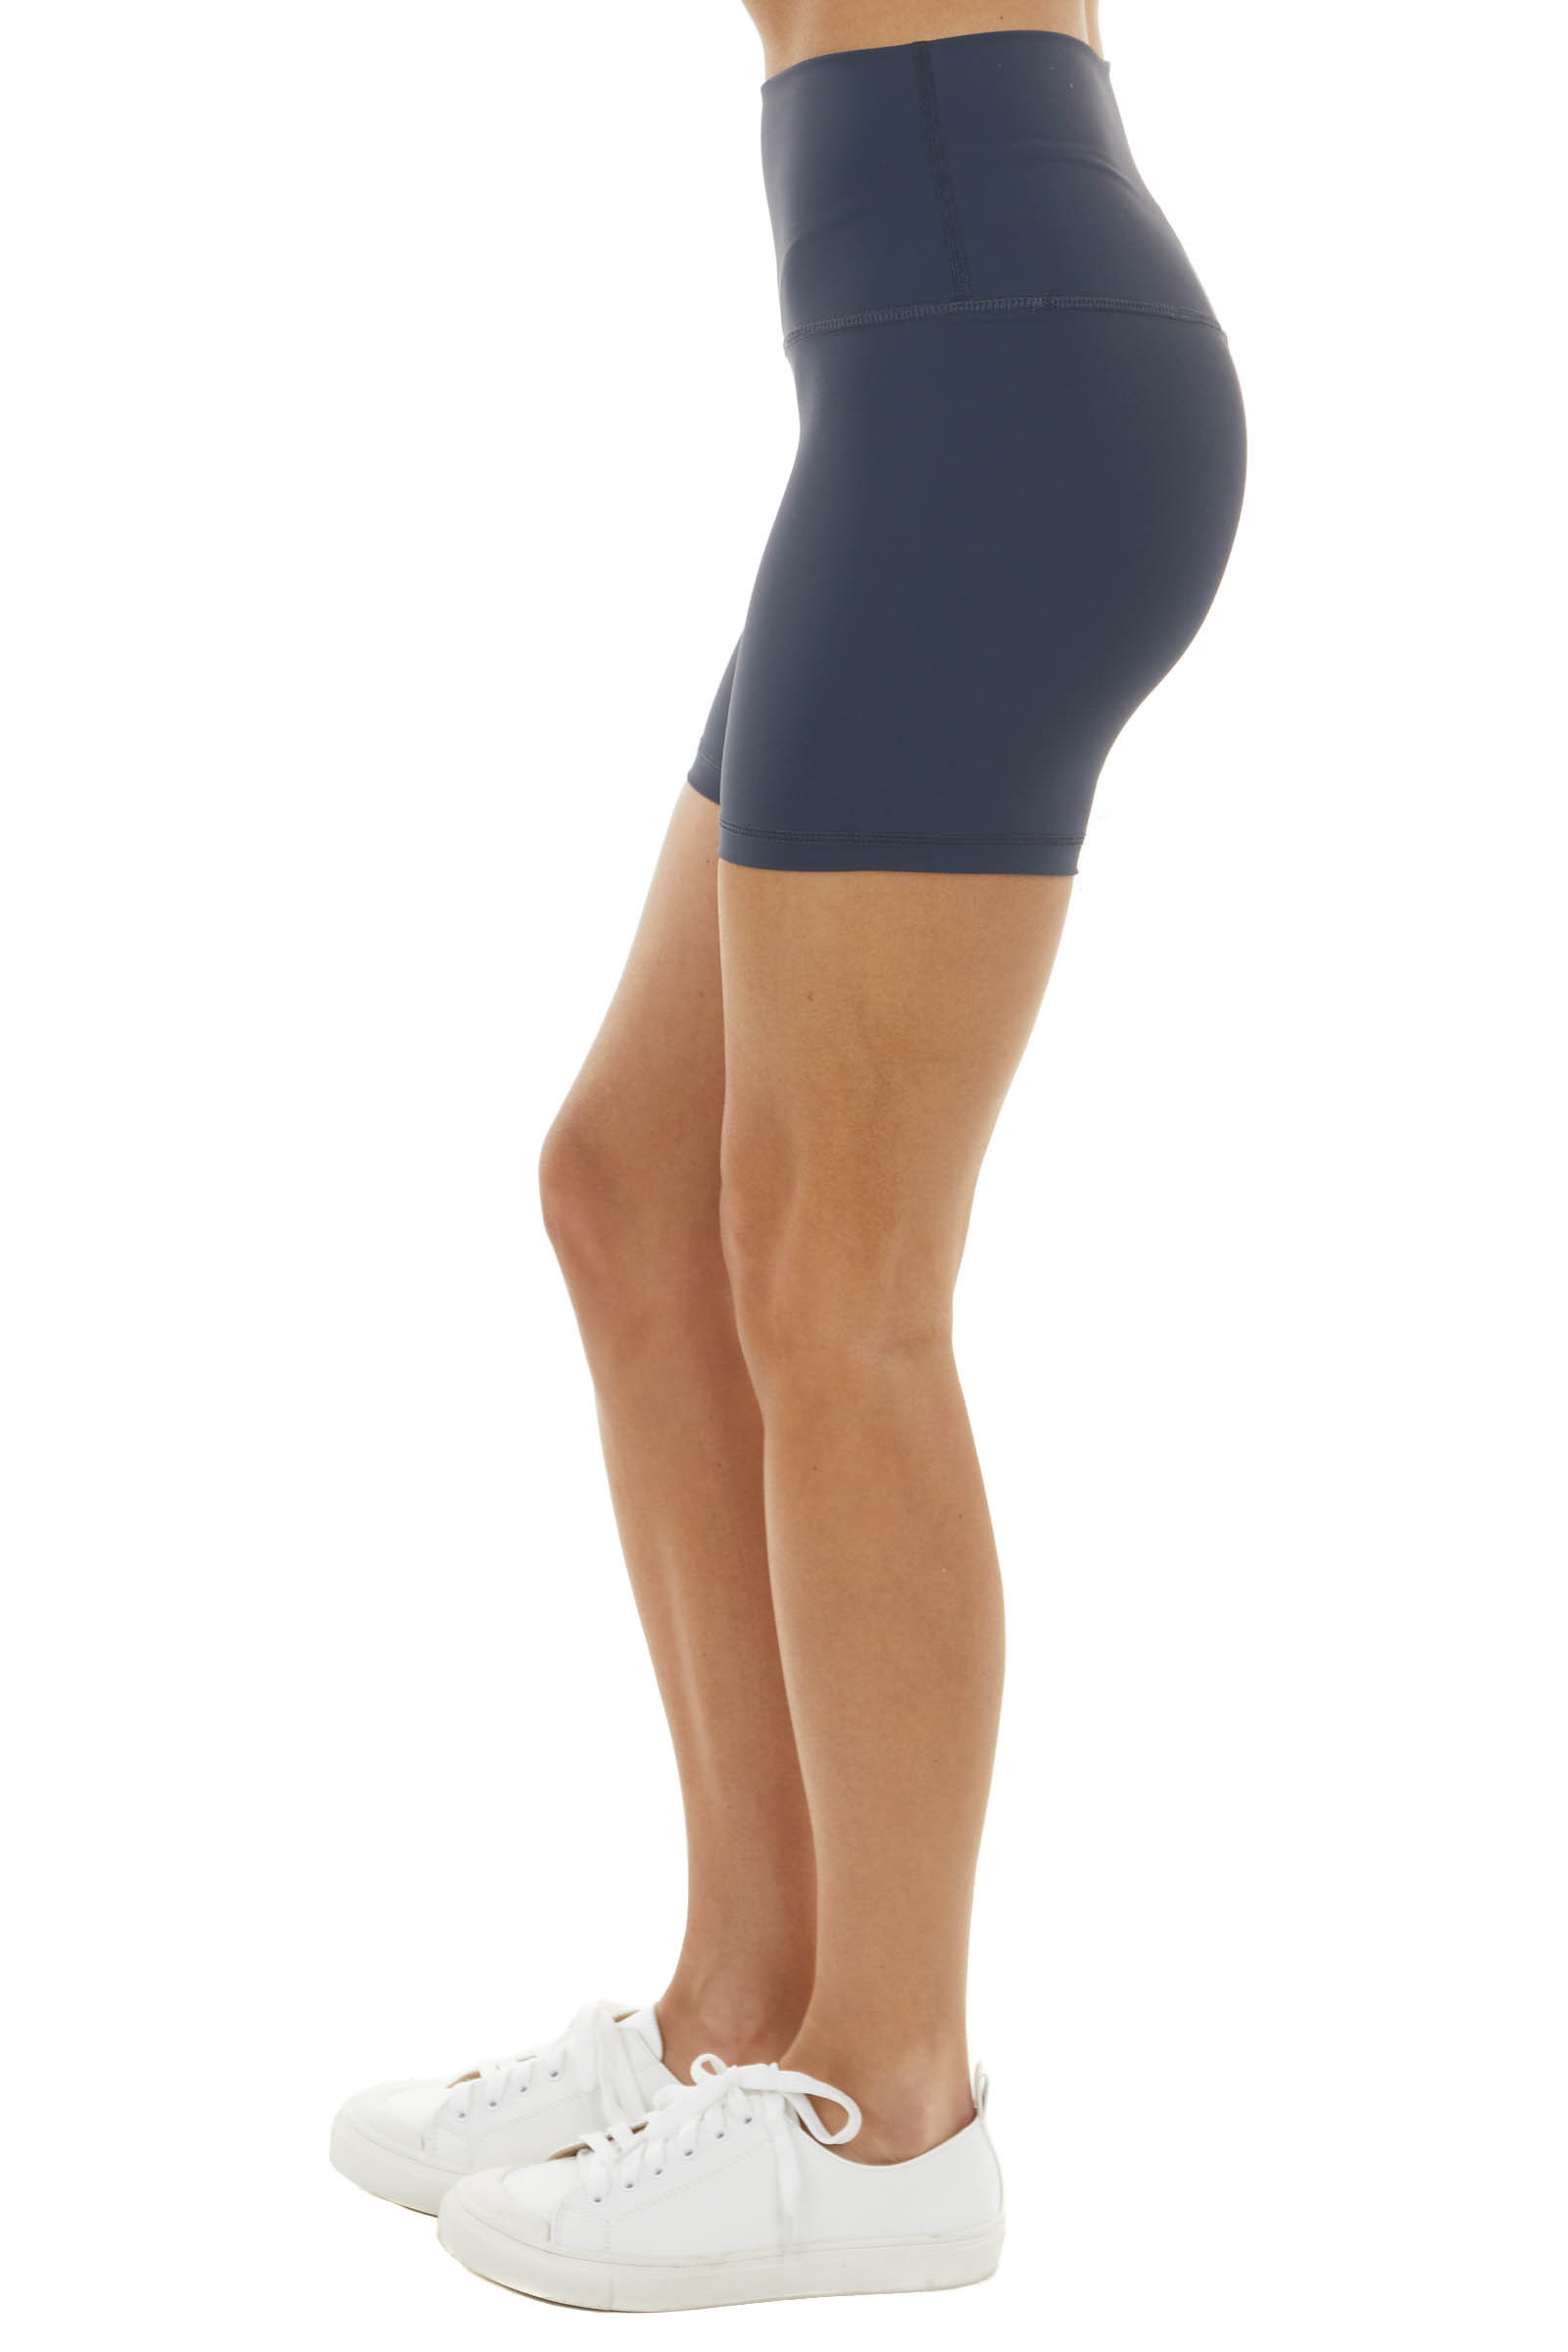 Charcoal Super Stretchy High Waisted Activewear Shorts